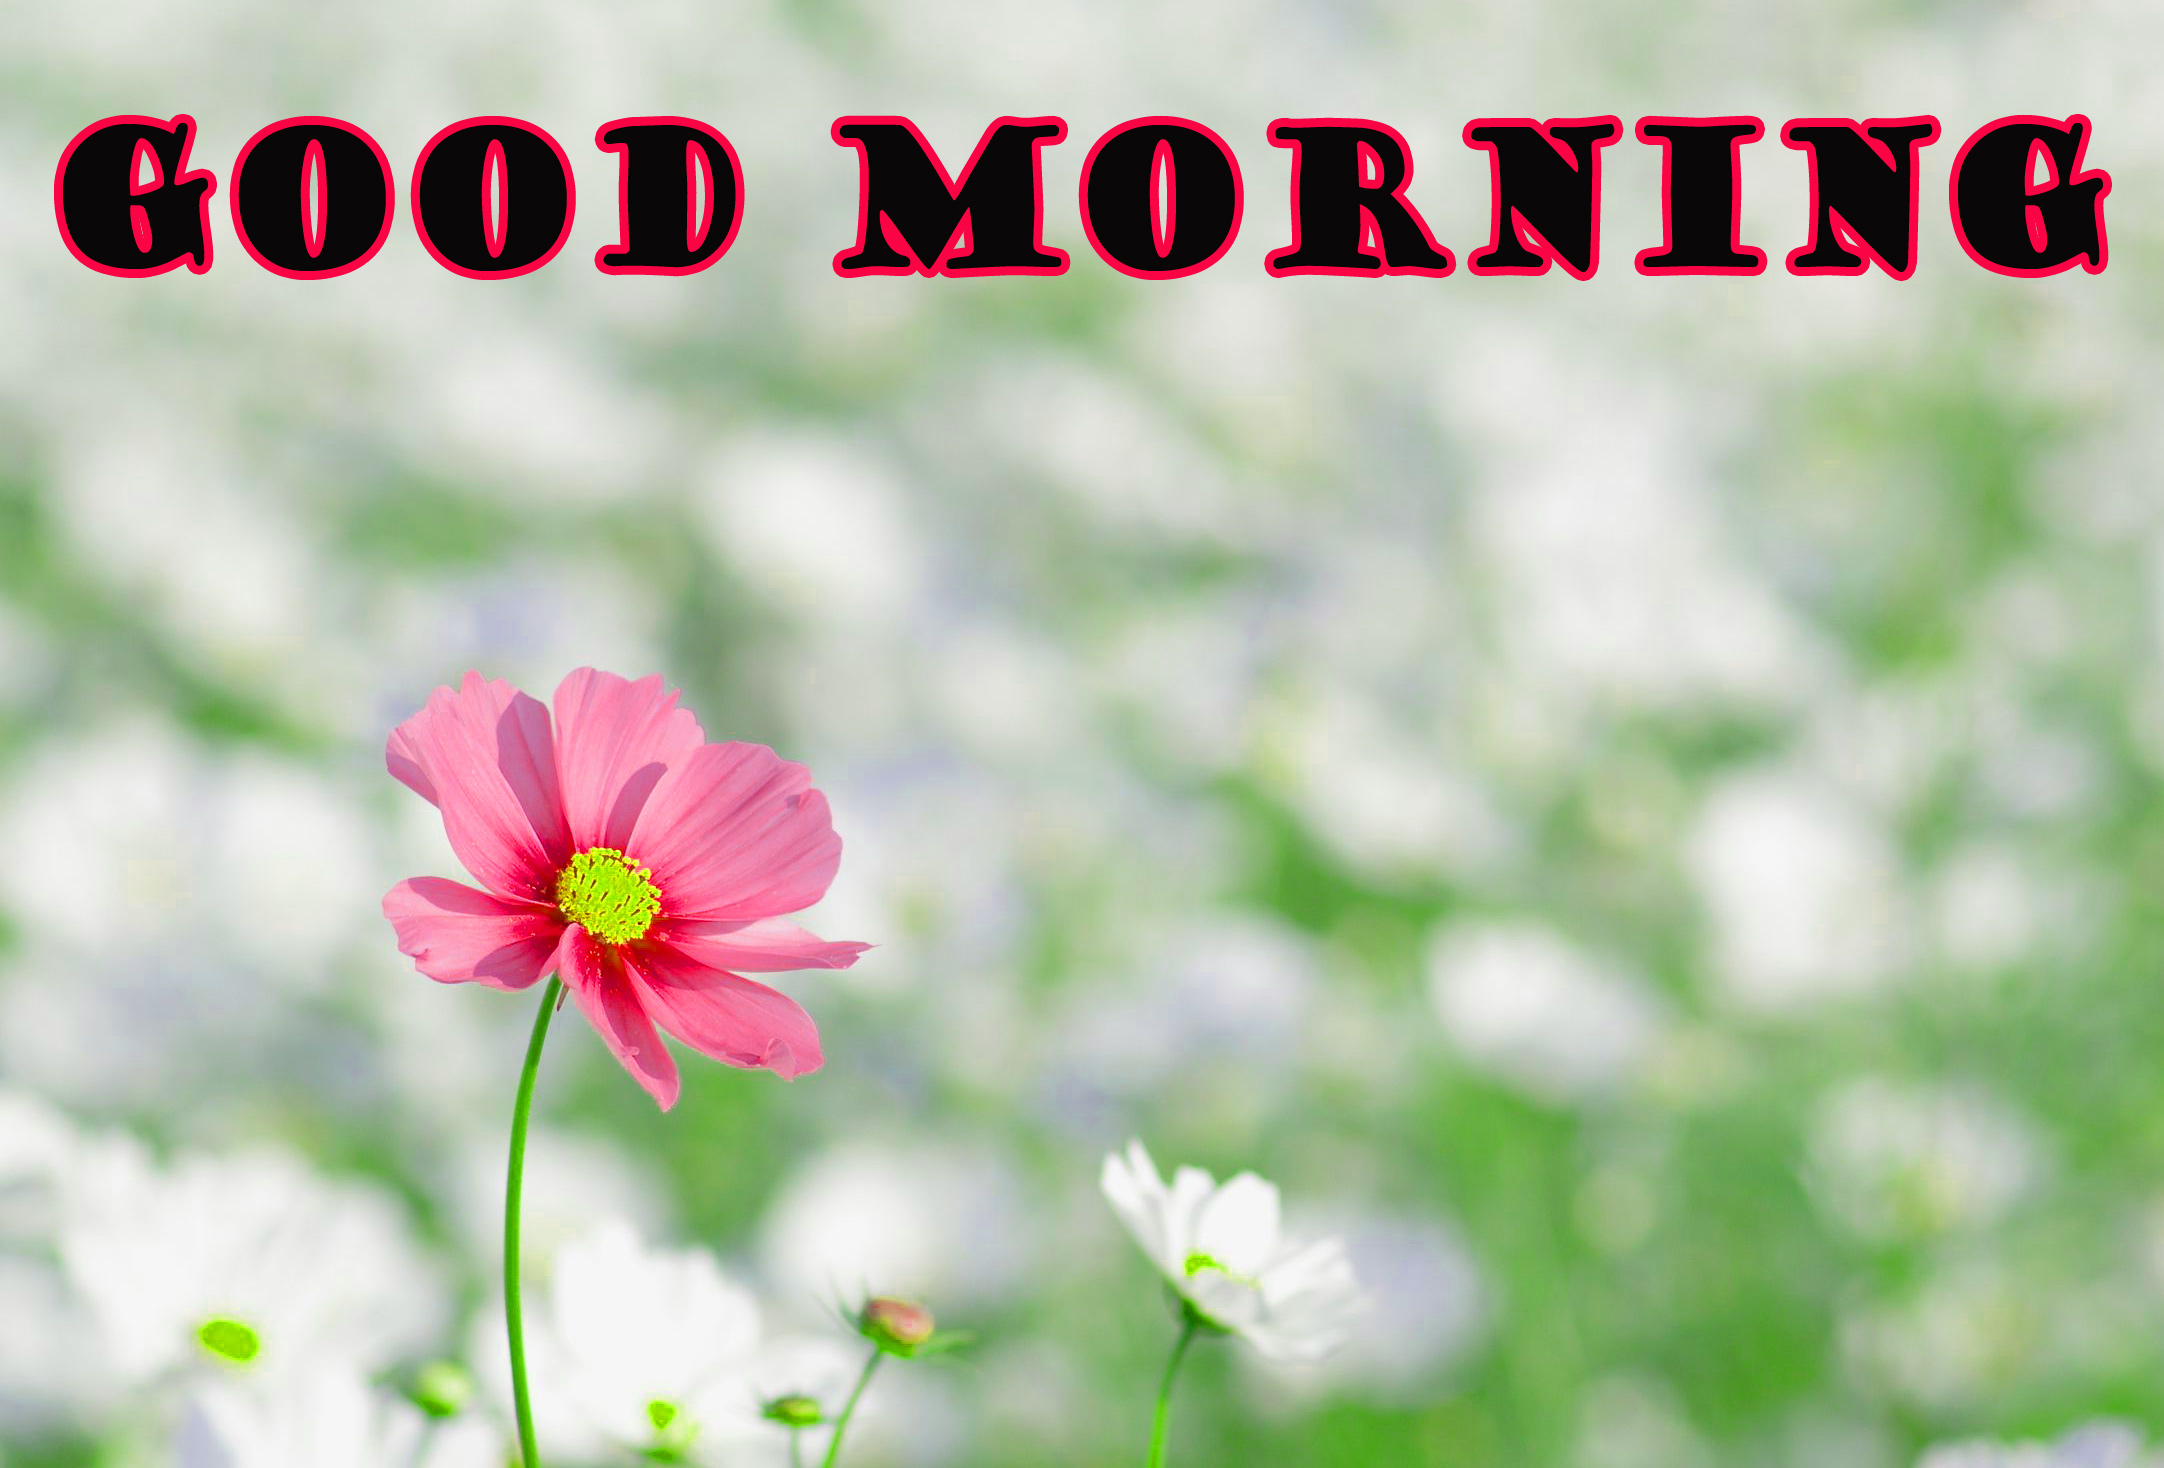 Good Morning Flowers Wallpaper Pictures Images HD Download